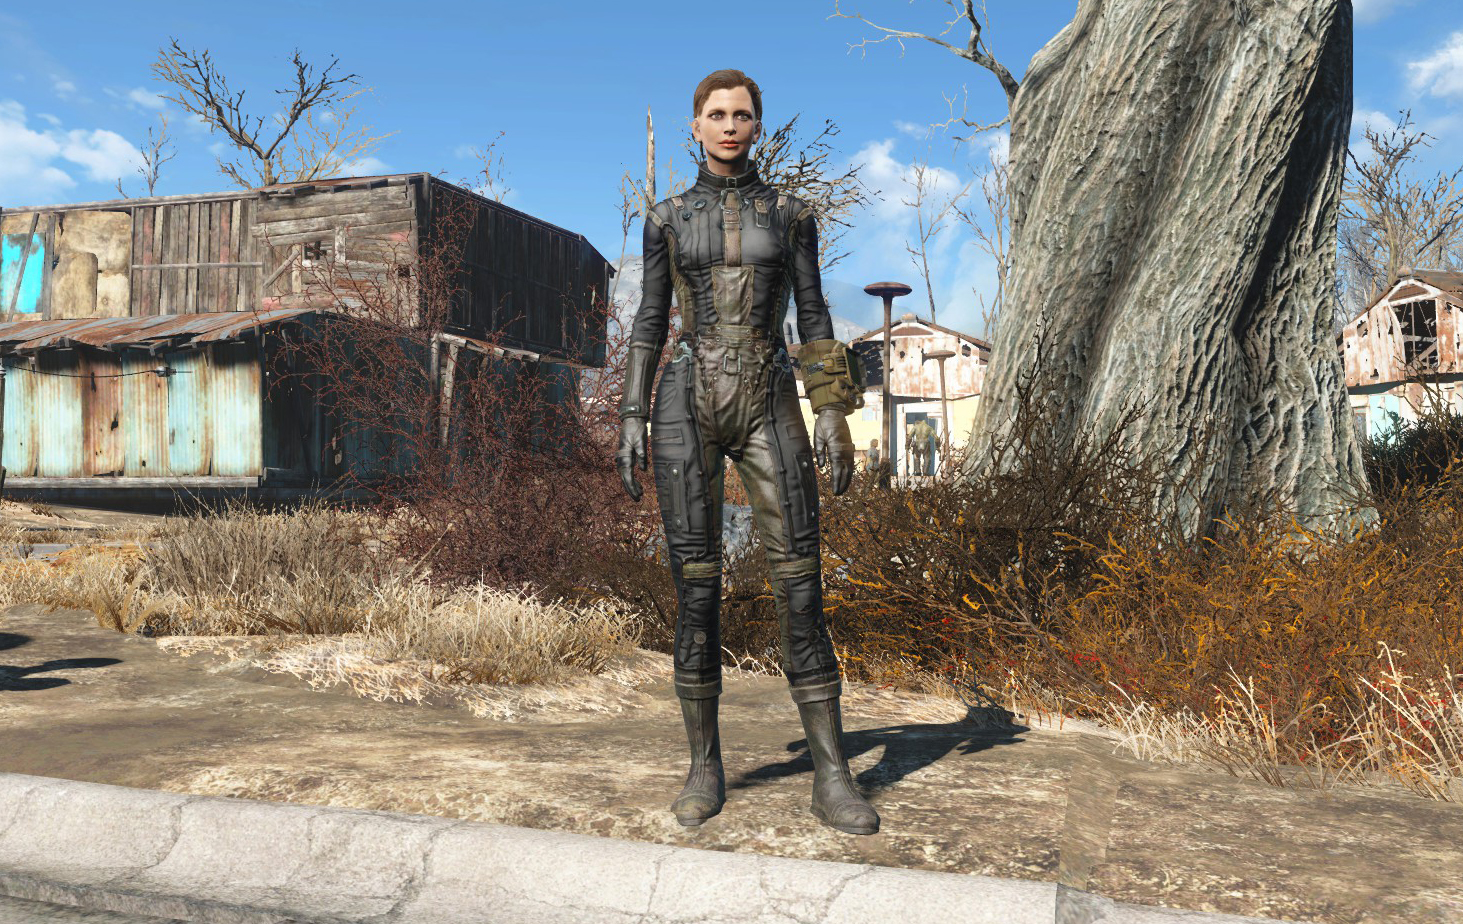 how to make companions wear armor in fallout 4